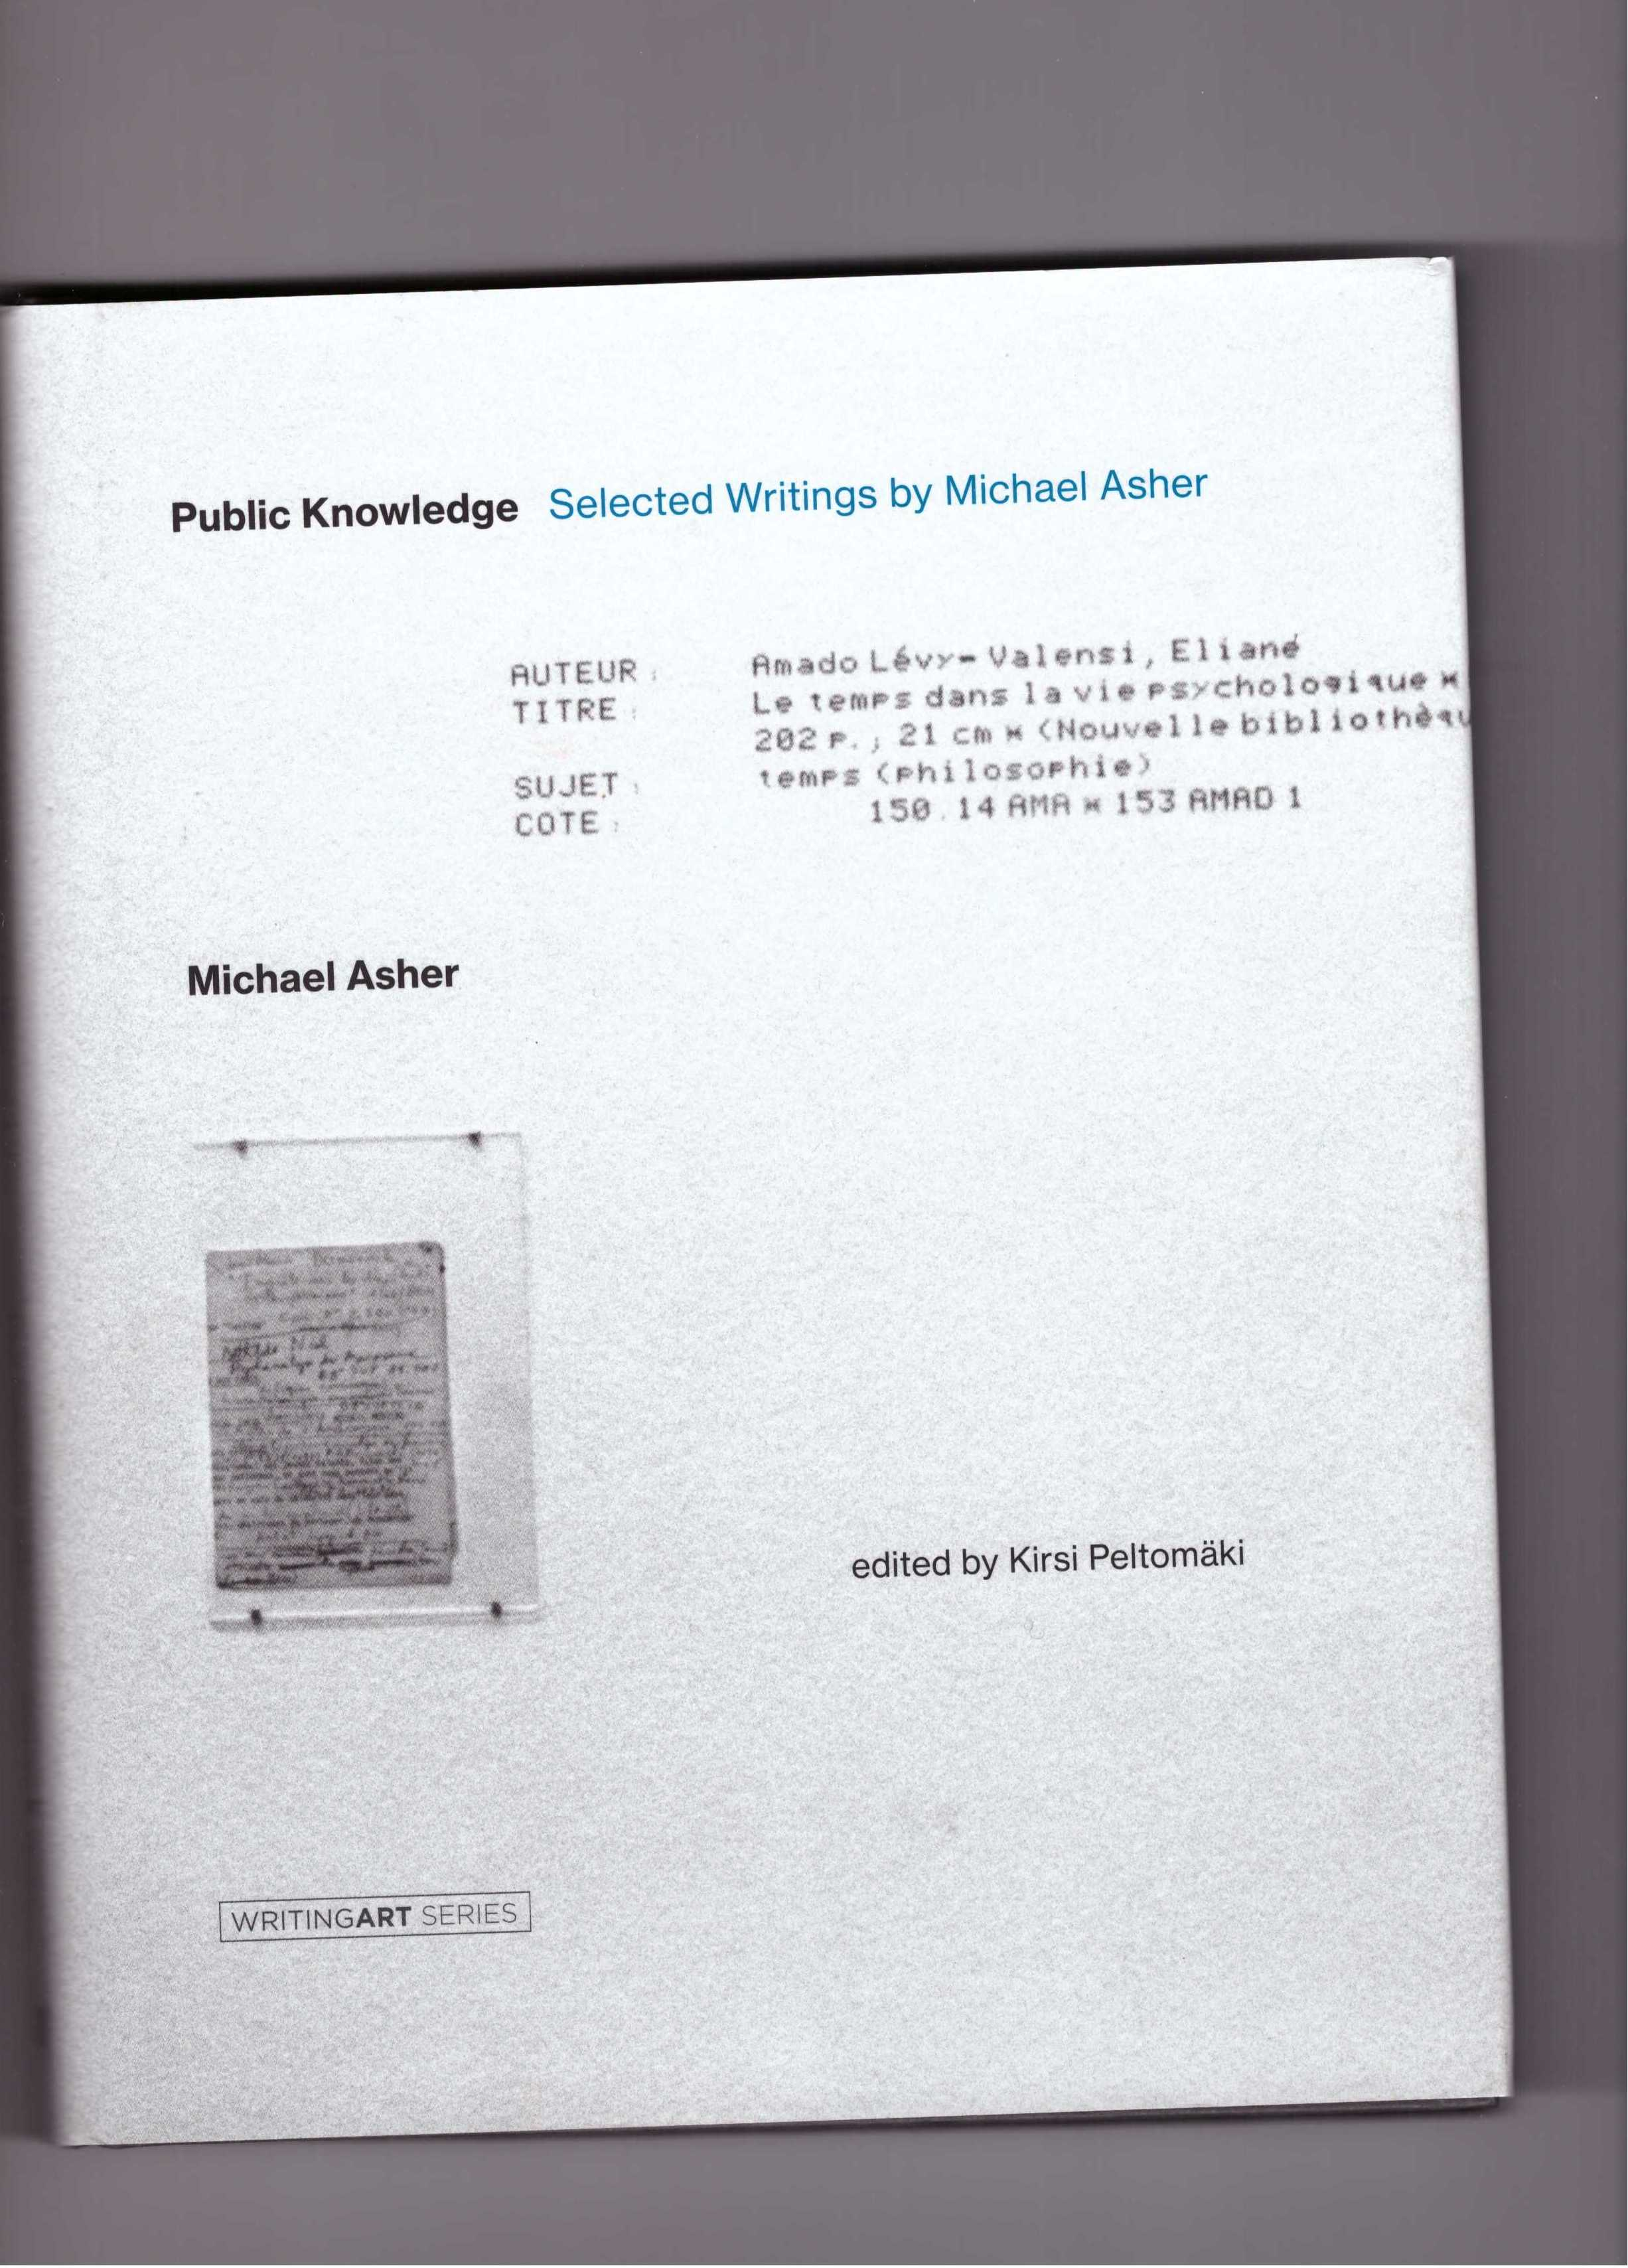 ASHER, Michael; PELTOMÄKI, Kirsi (ed.) - Public Knowledge: Selected Writings by Michael Asher